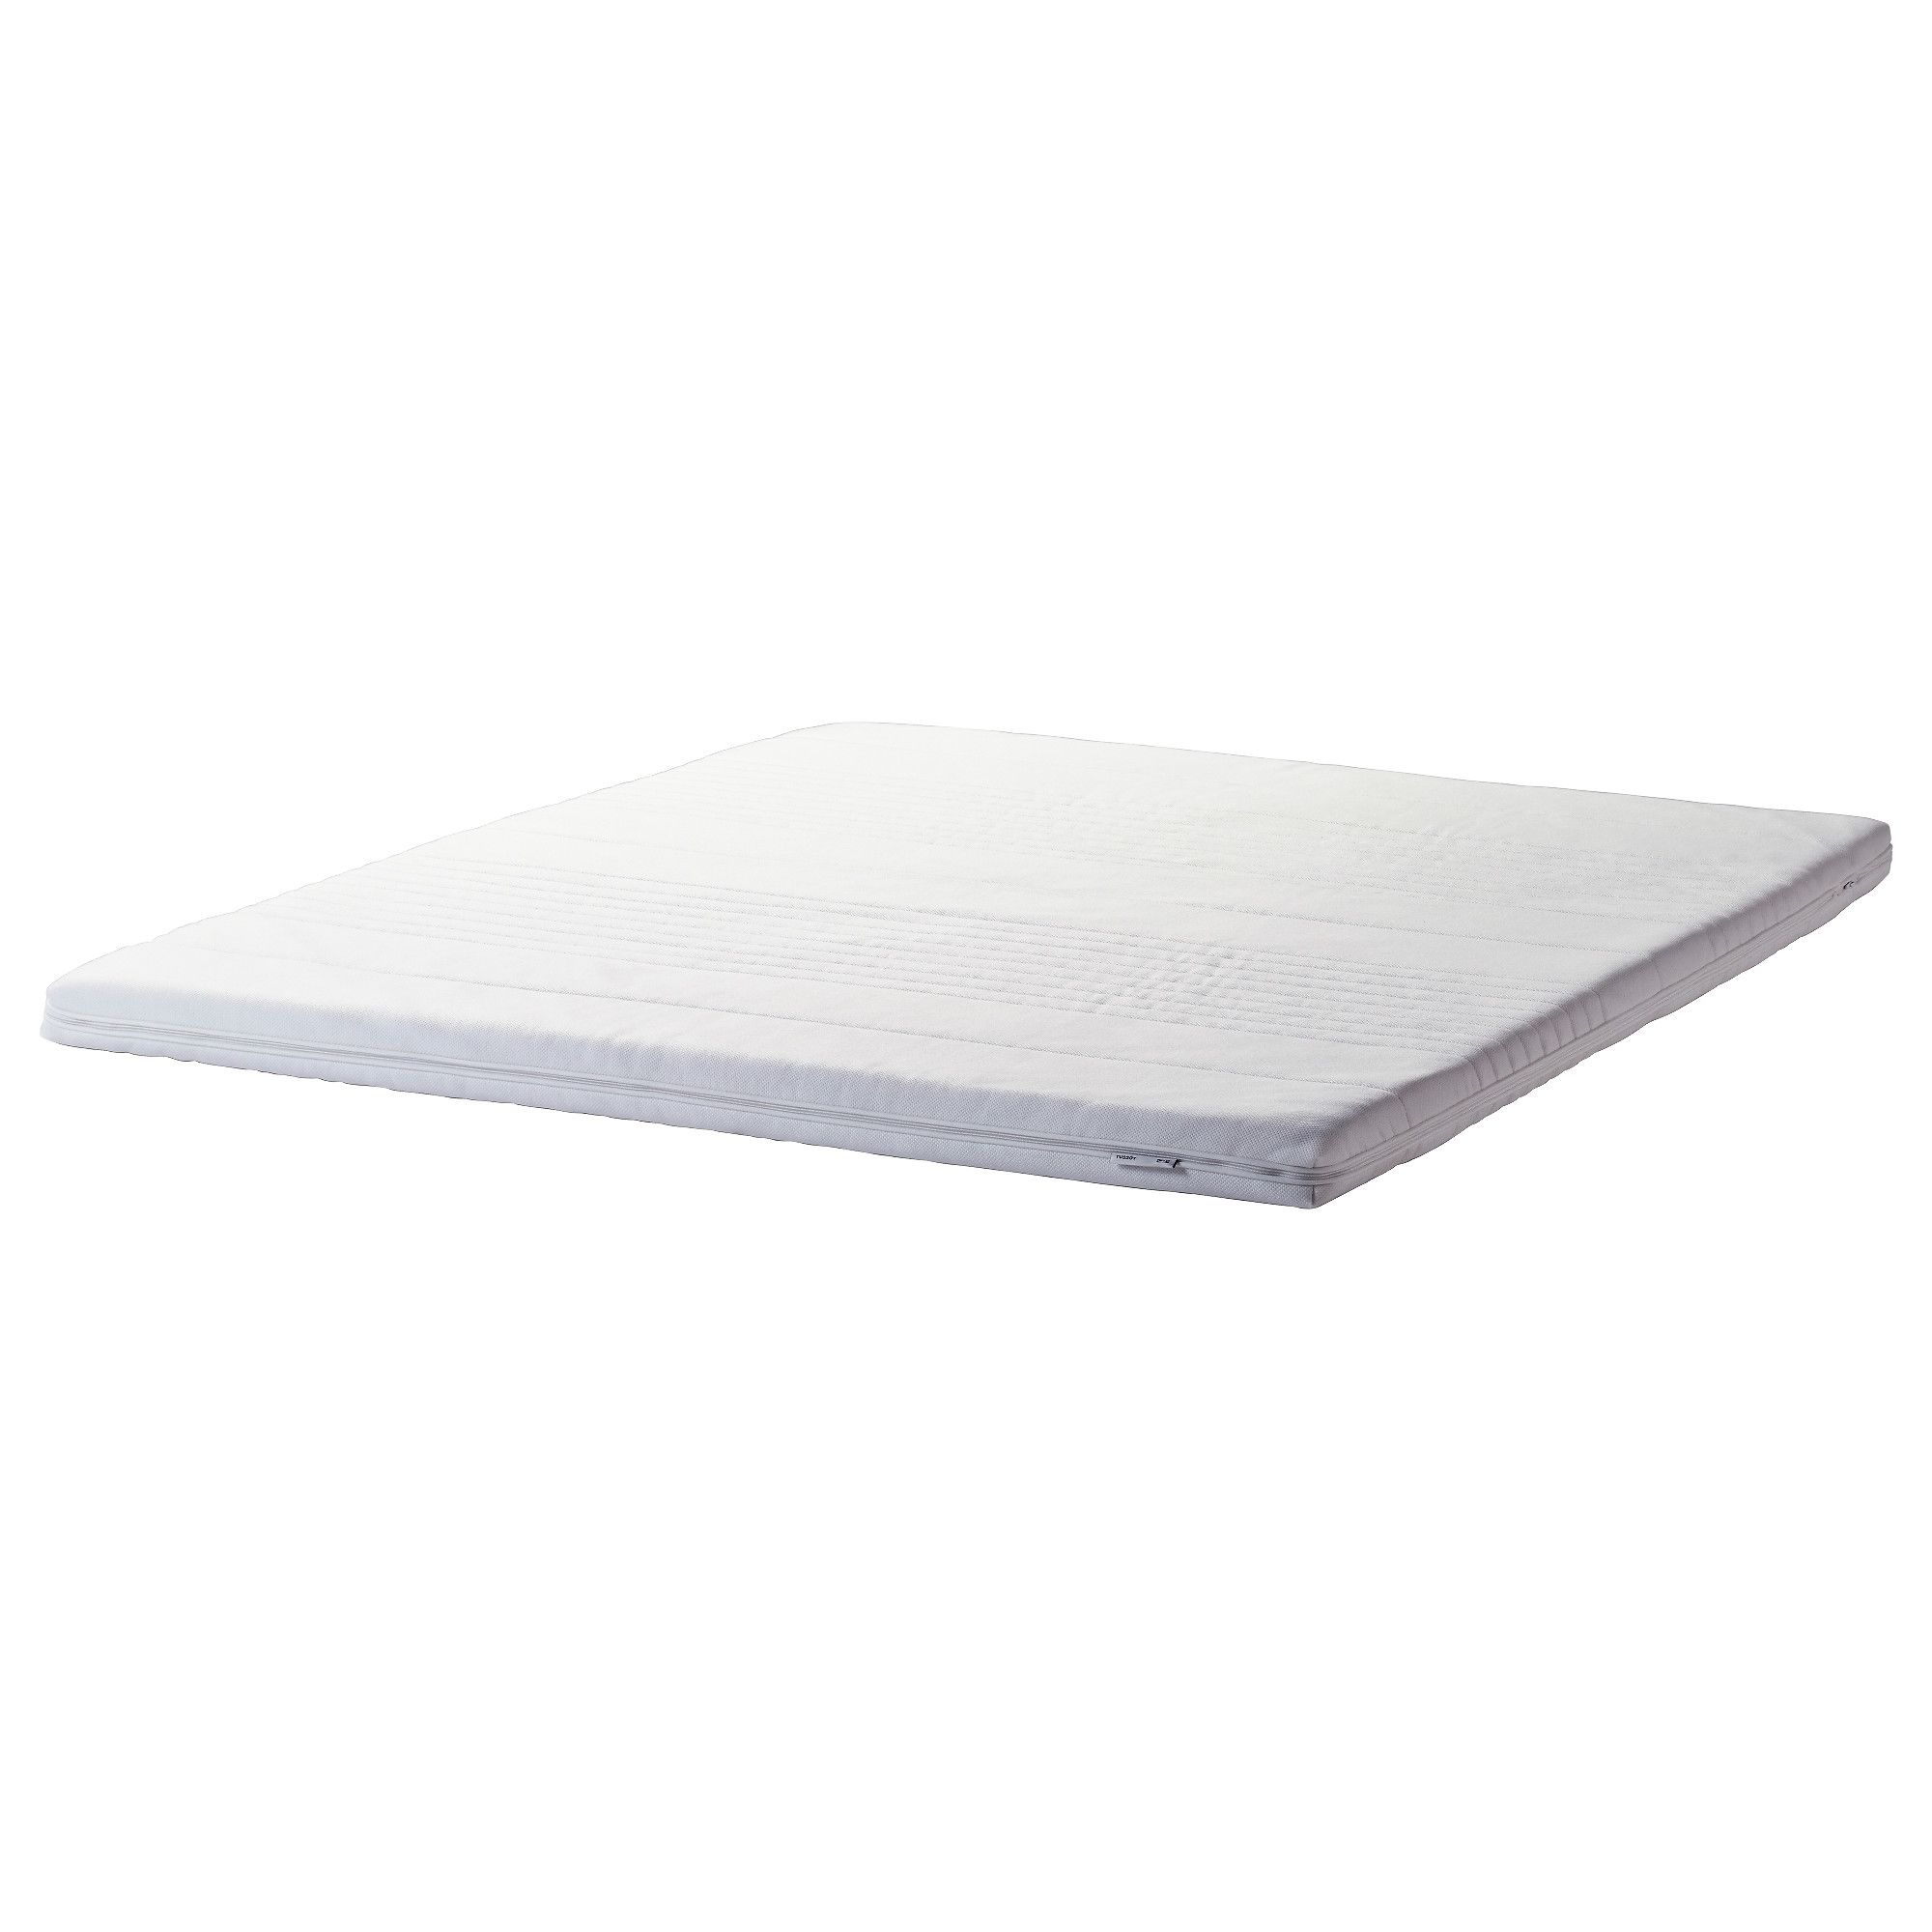 TUSSÖY Mattress topper white. Shop IKEA.ca IKEA Firm